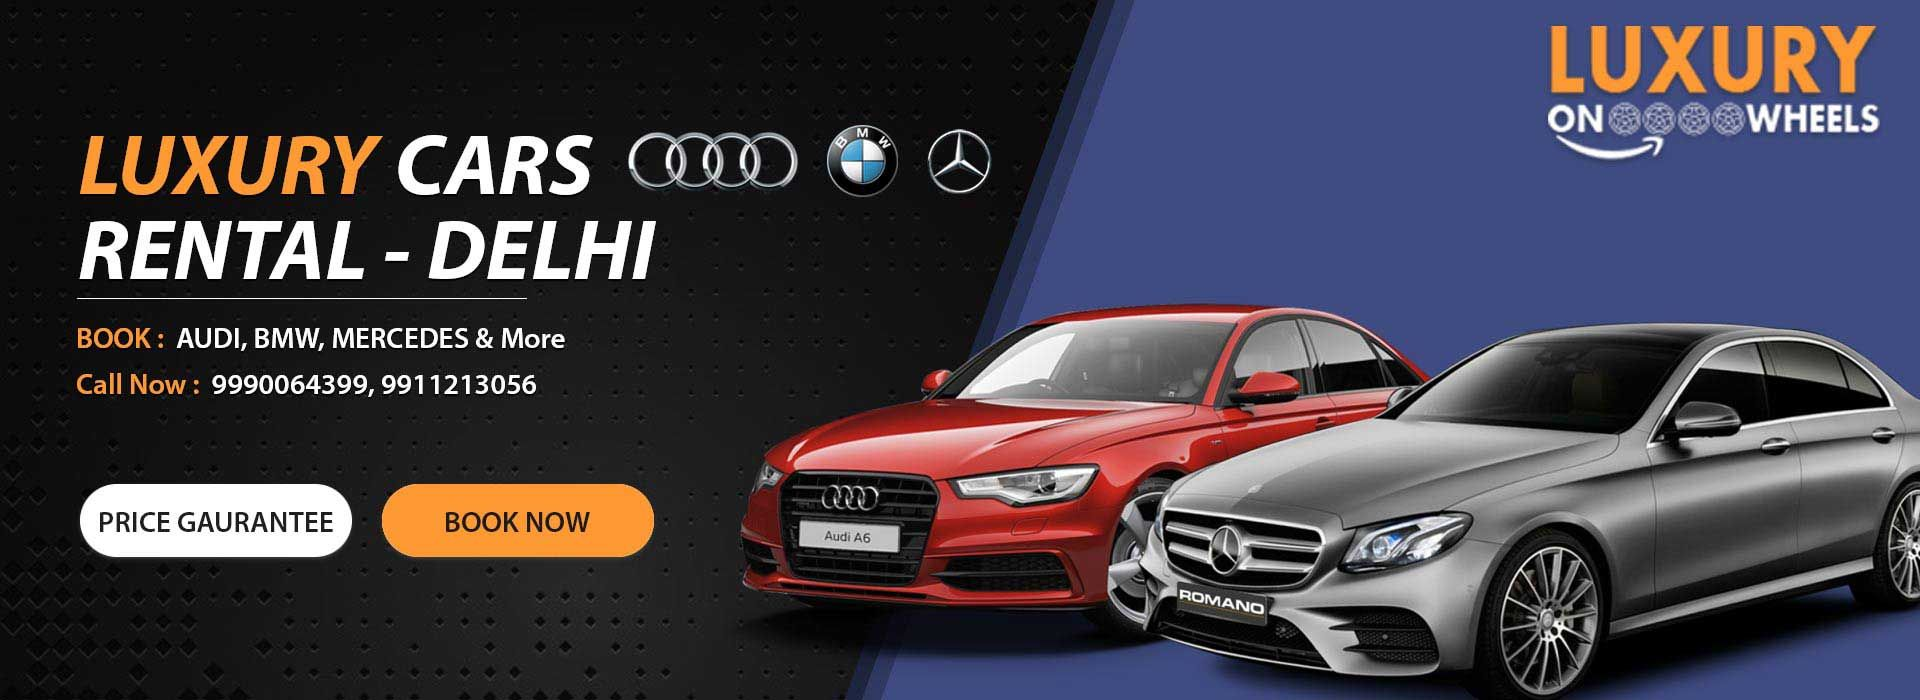 Luxury Car On Rent In Delhi Car Rental Rent A Car Luxury Cars